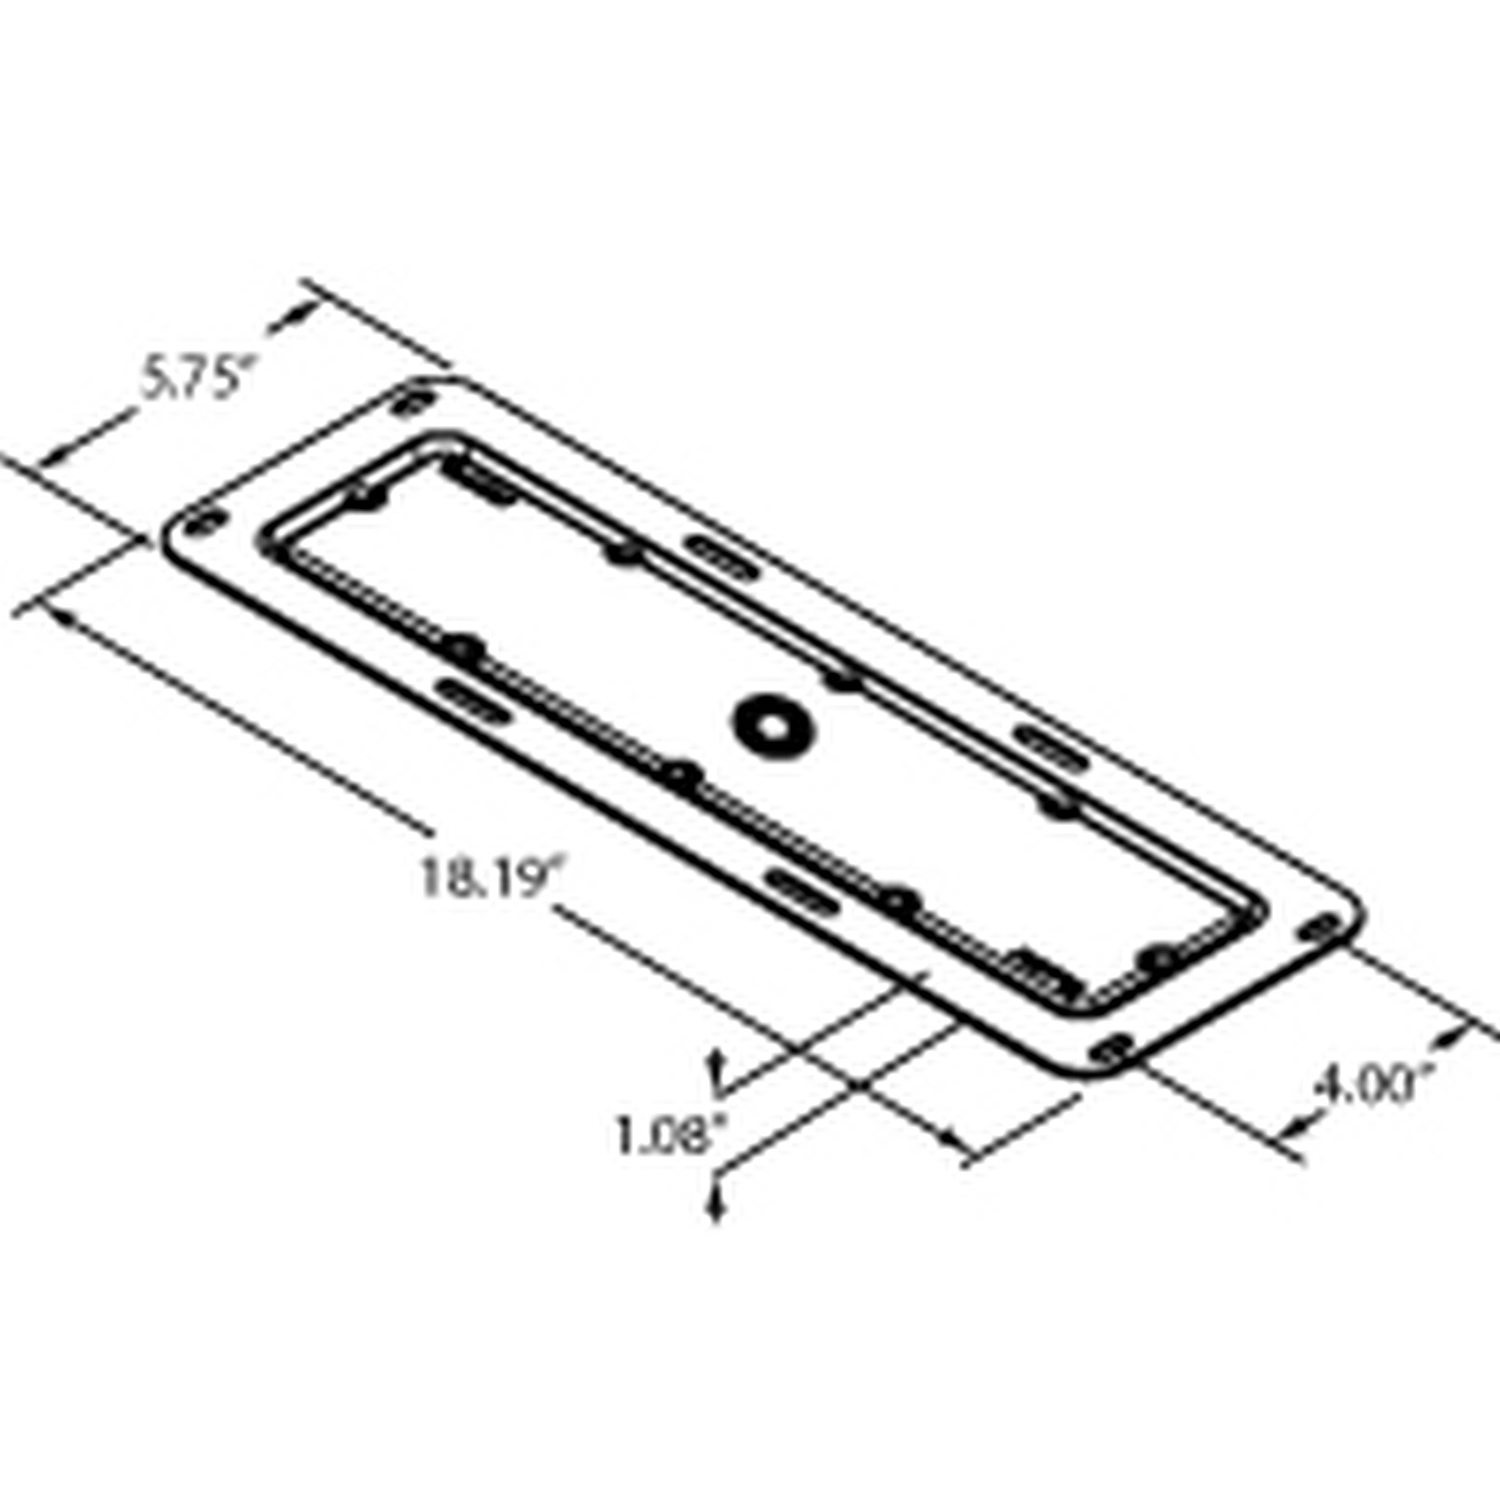 Cargo Bed Golf Cart Brackets